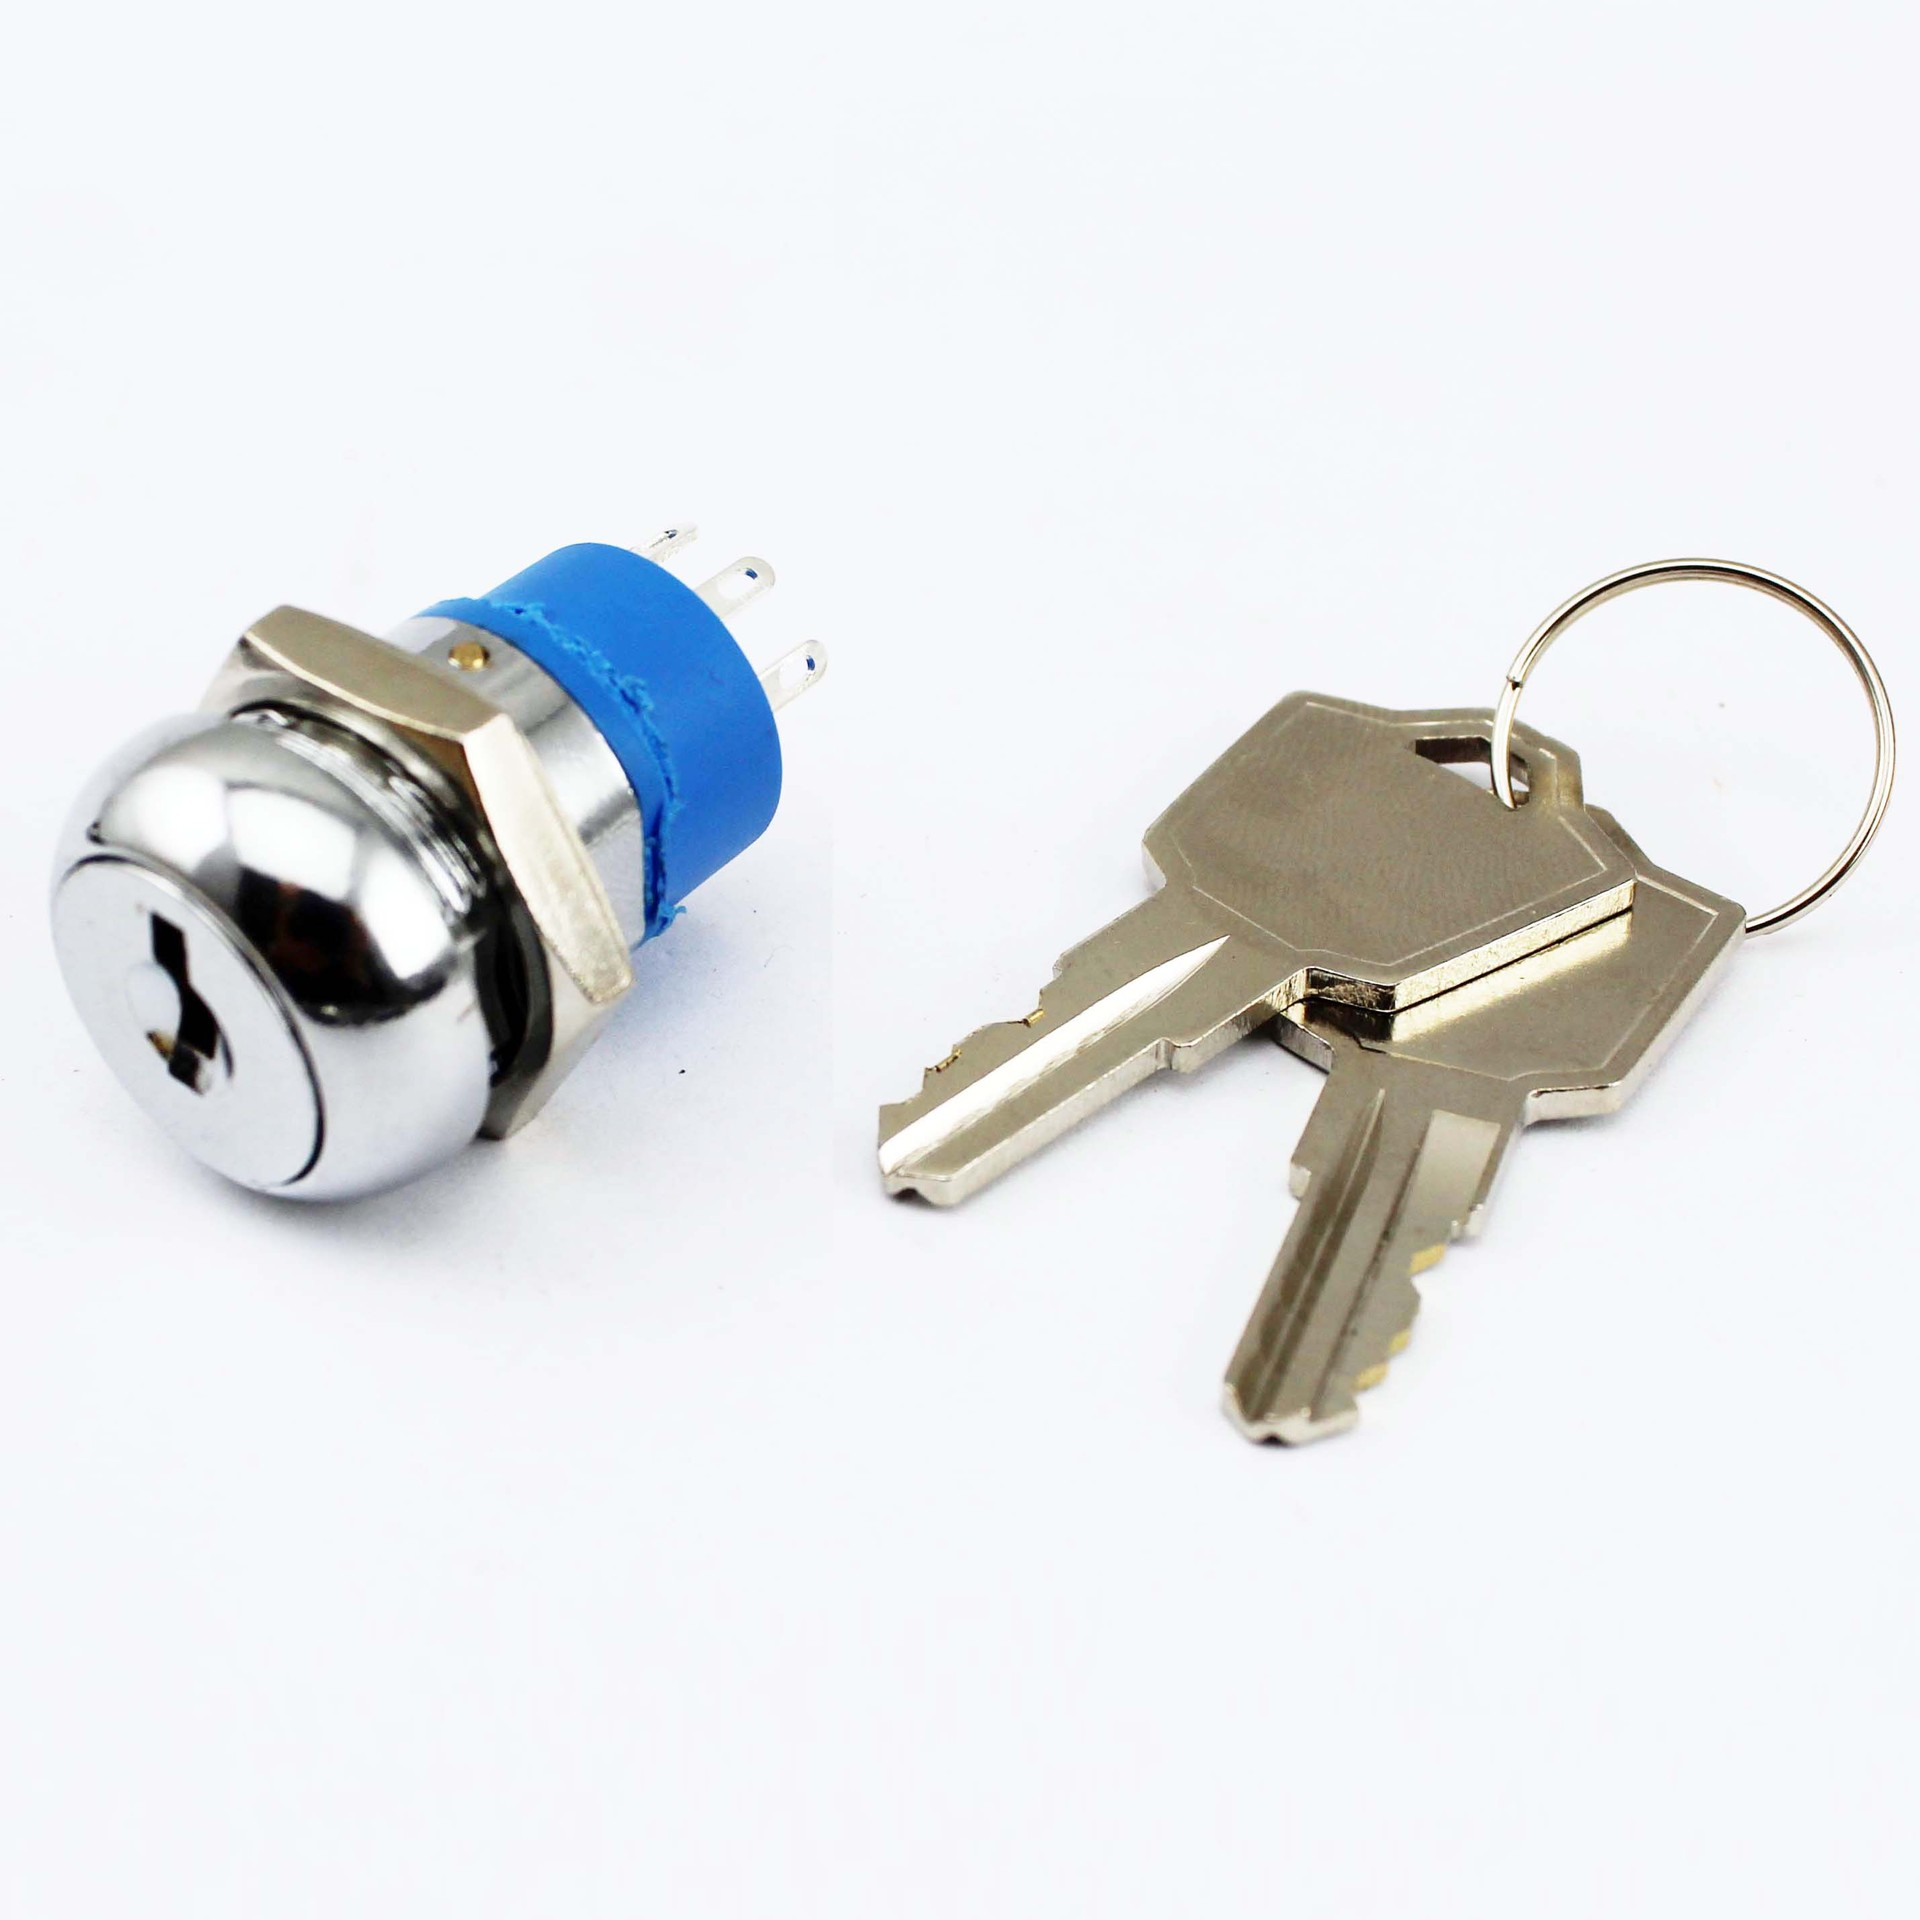 Supply Key Switch Electronic Lock Reset Feature Third Gear Power Lock Double Reset Power Lock S216